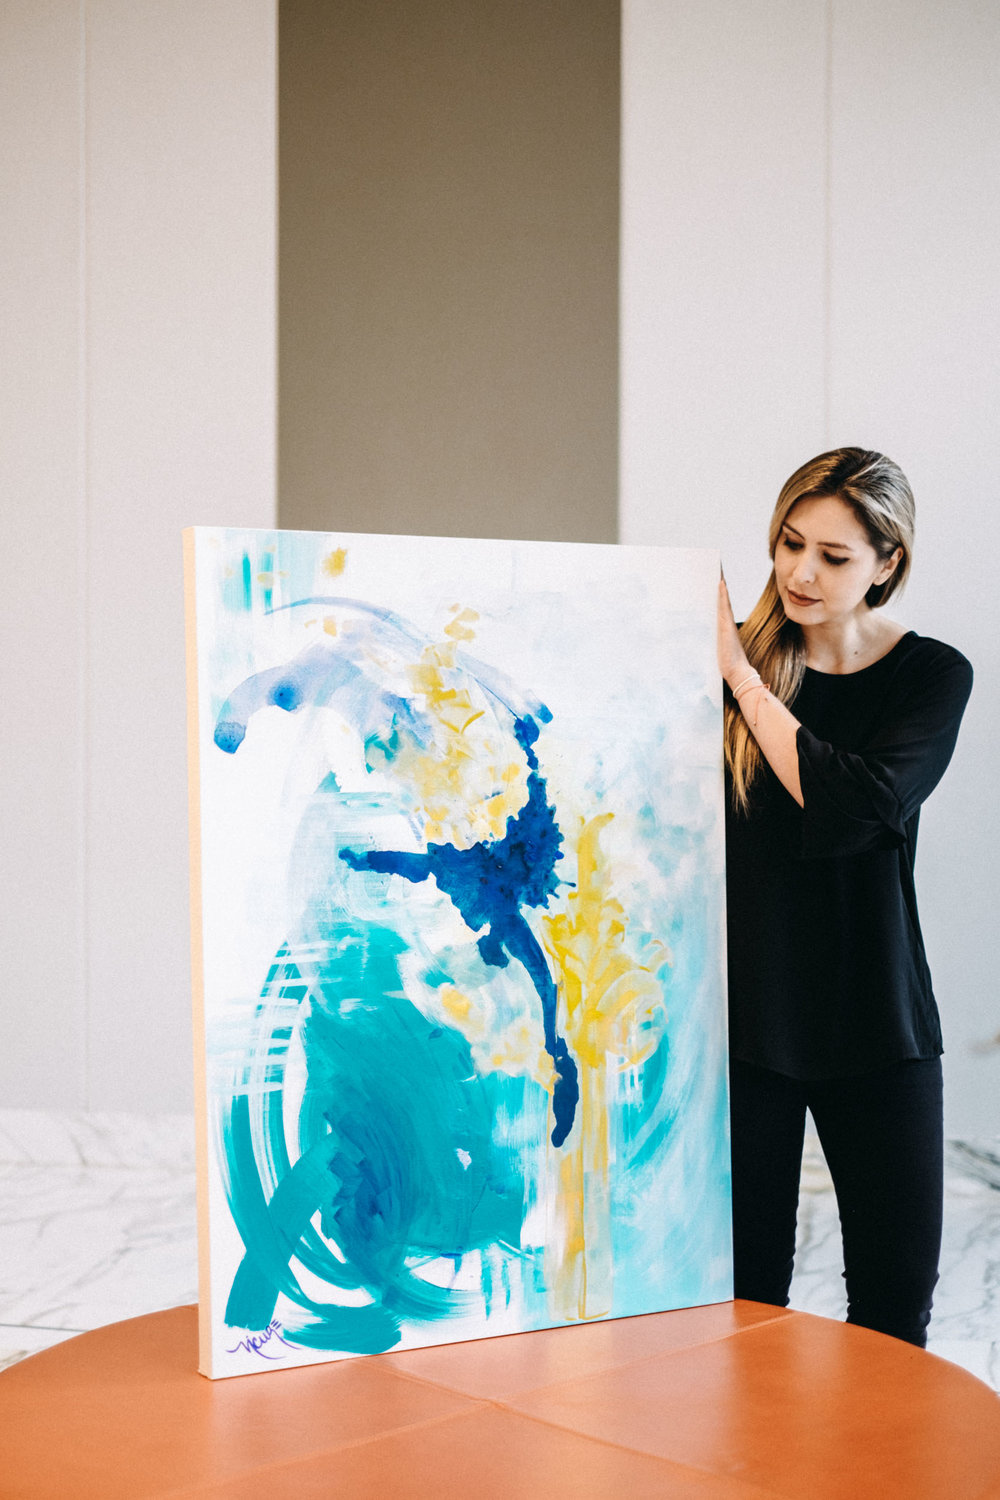 #1 - The Eighth Month. Miami Artist Nicolle Cure